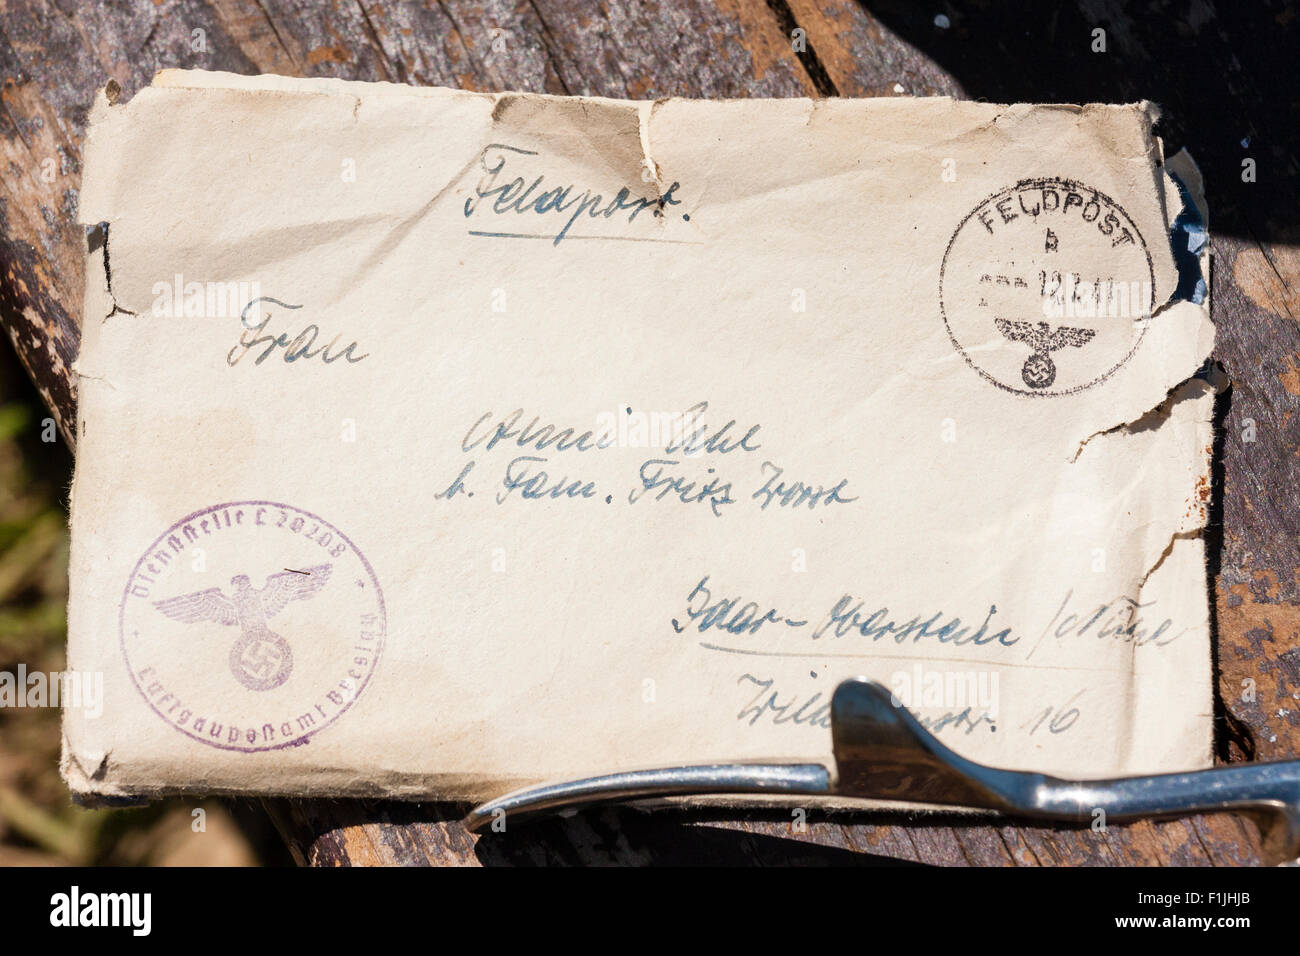 German world war two old letter, crumpled, torn. Field post, addressed and stamped. WW2 re-enactment - Stock Image